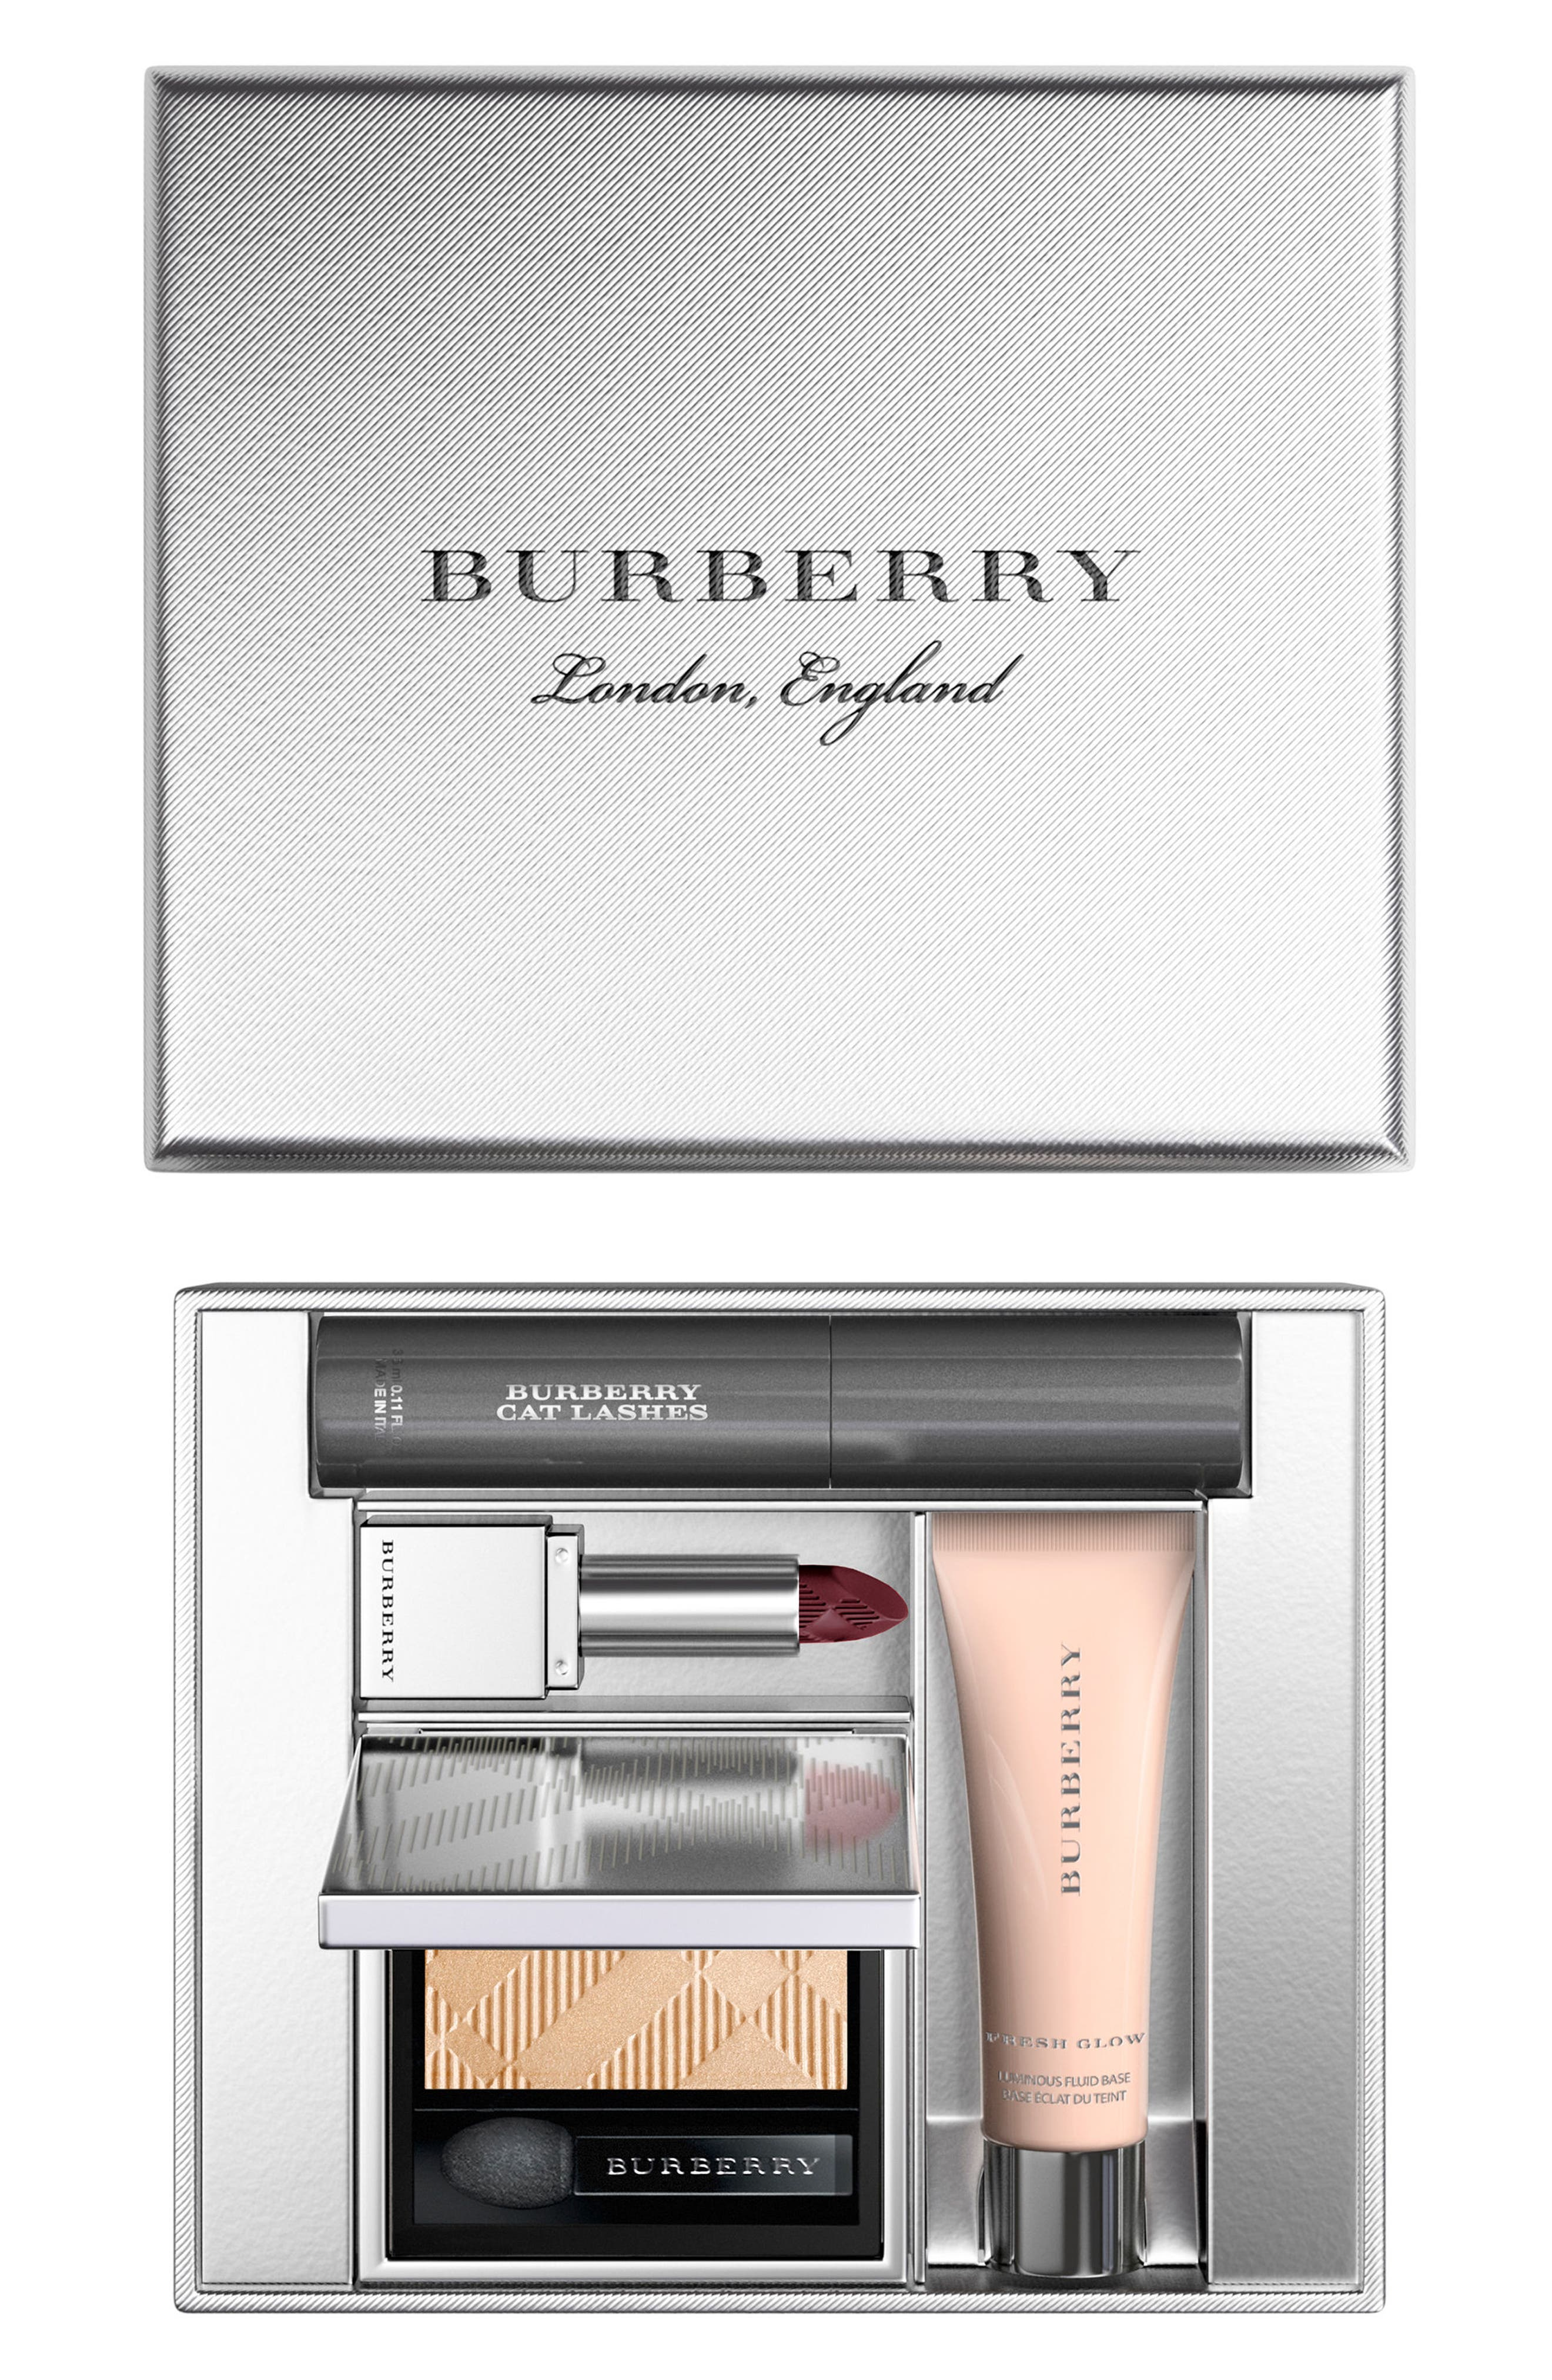 Burberry Beauty Festive Beauty Box (Limited Edition)